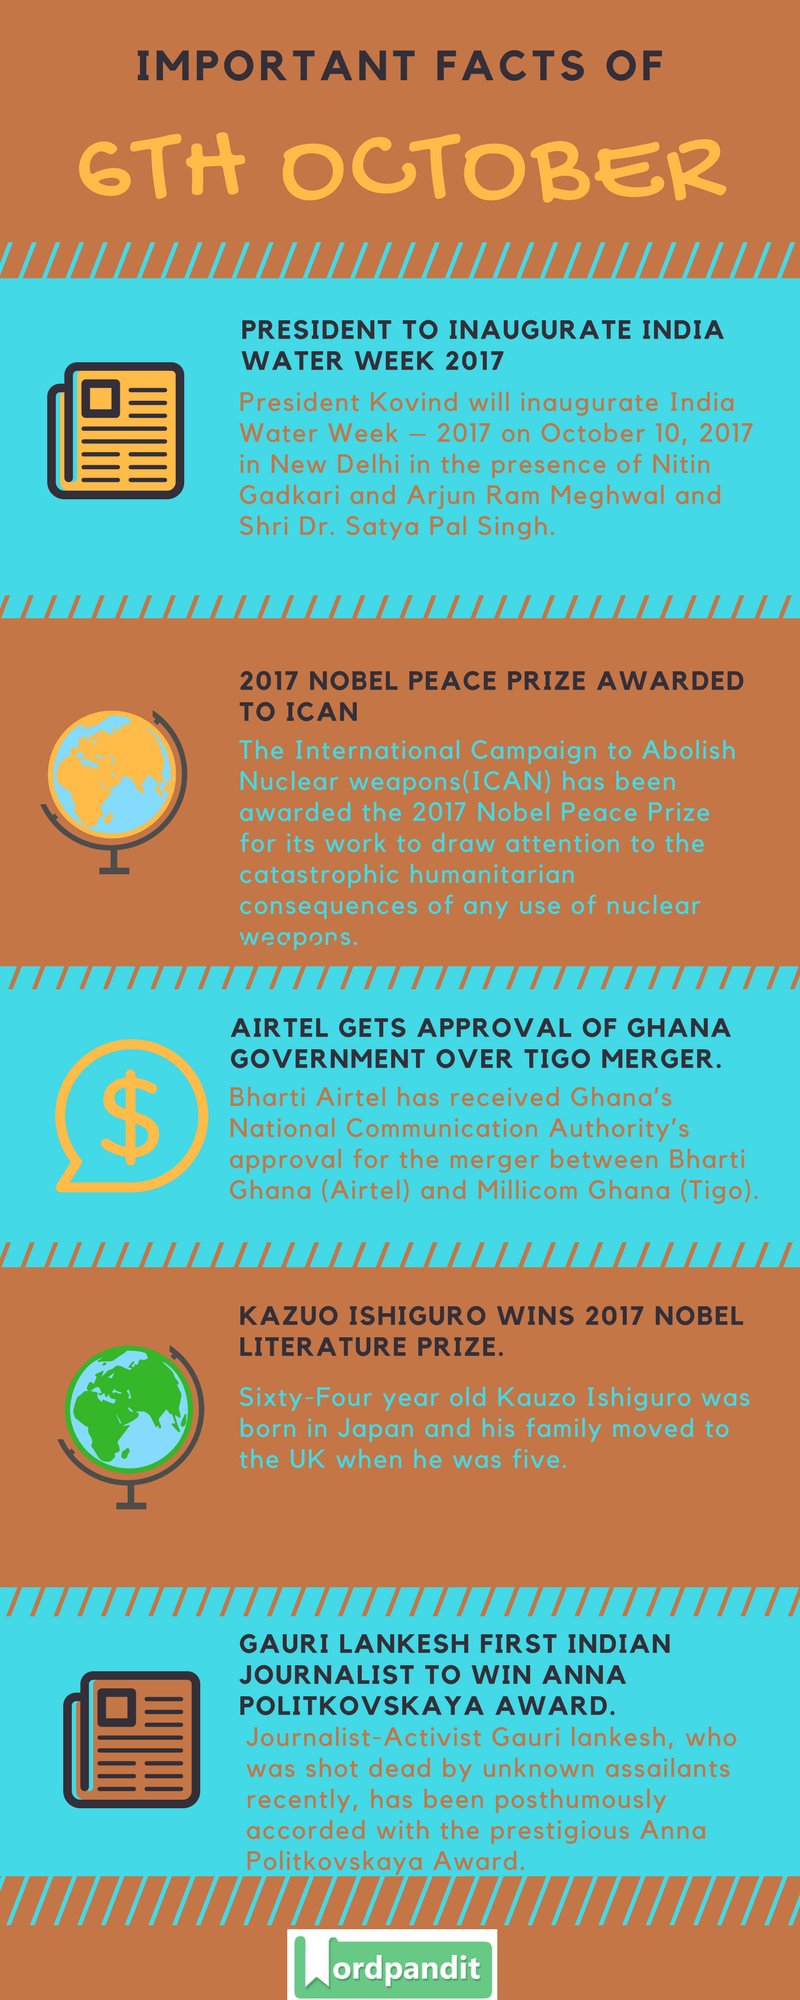 Daily-Current-Affairs-6-october-2017-Current-Affairs-Quiz-october-6-2017-Current-Affairs-Infographic